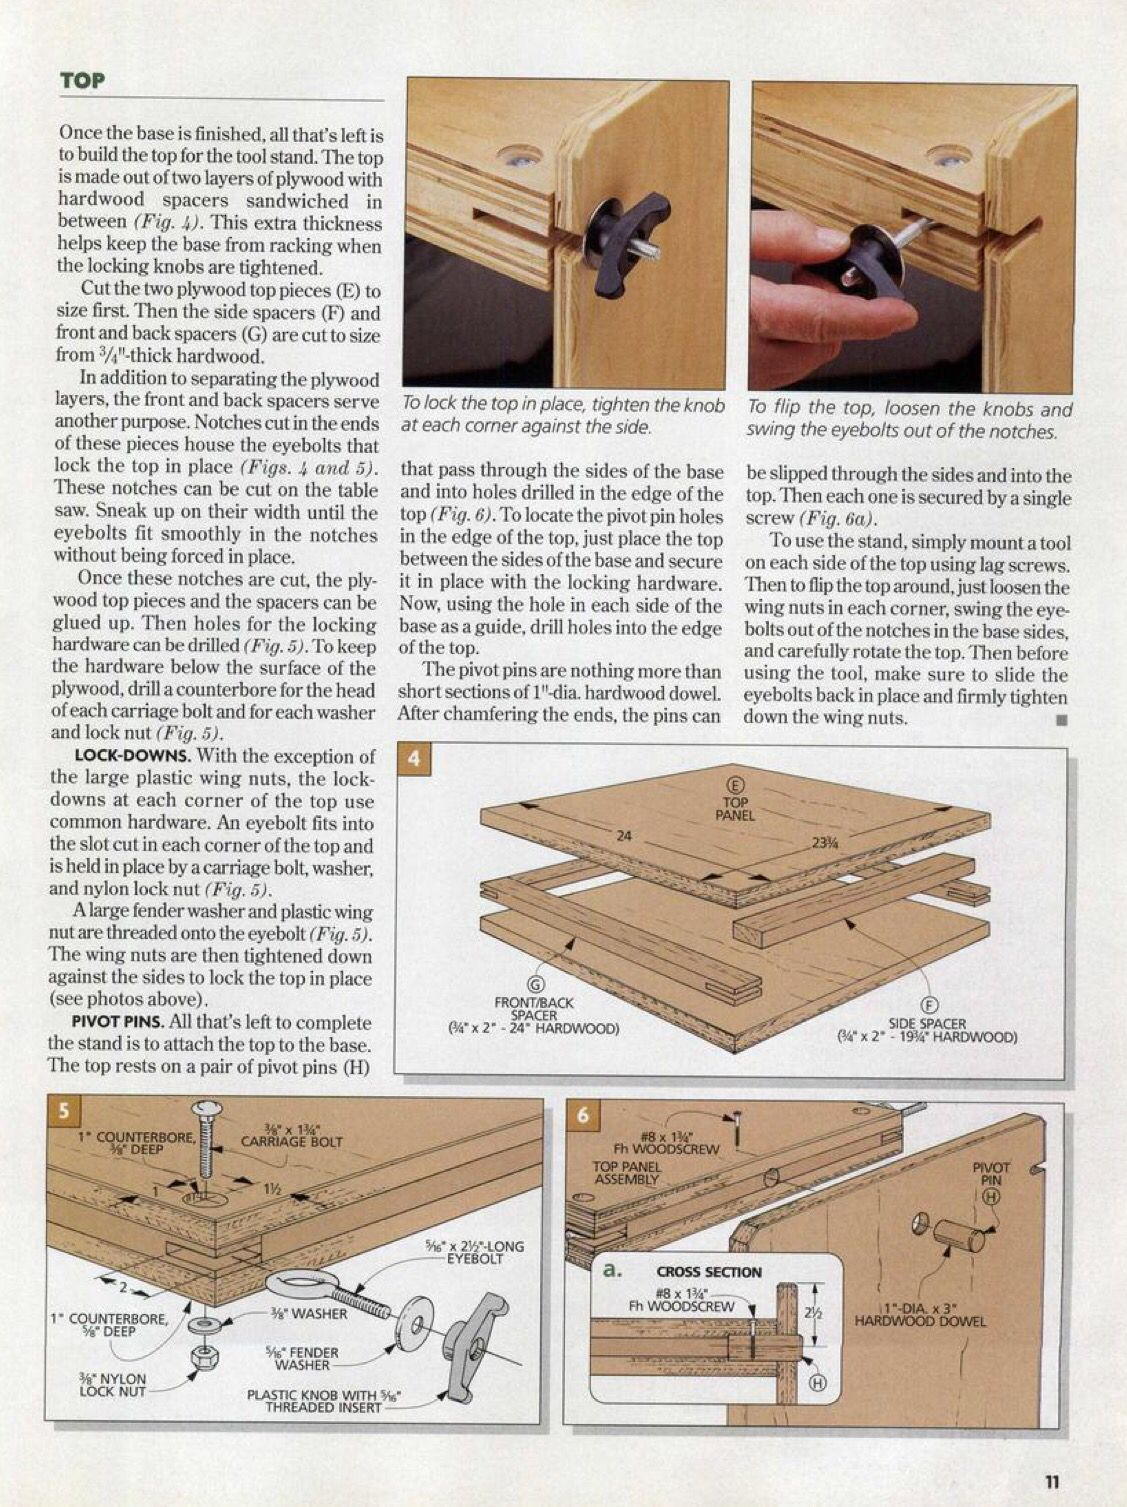 Flip Top Tool Stand Tool Stand Woodworking Apron Workshop Layout